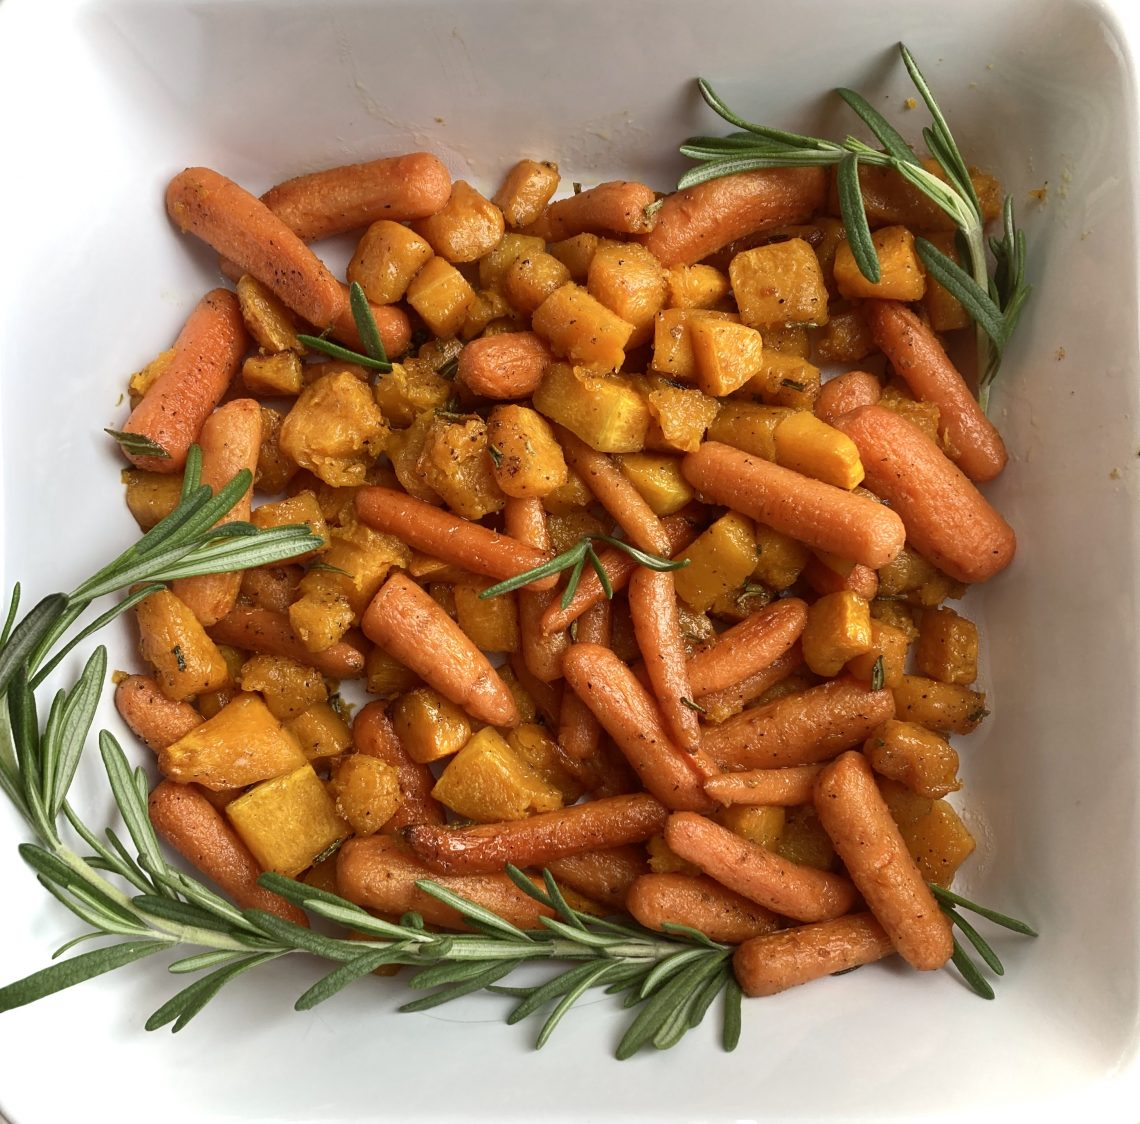 maple roasted butternut squash and carrots with rosemary